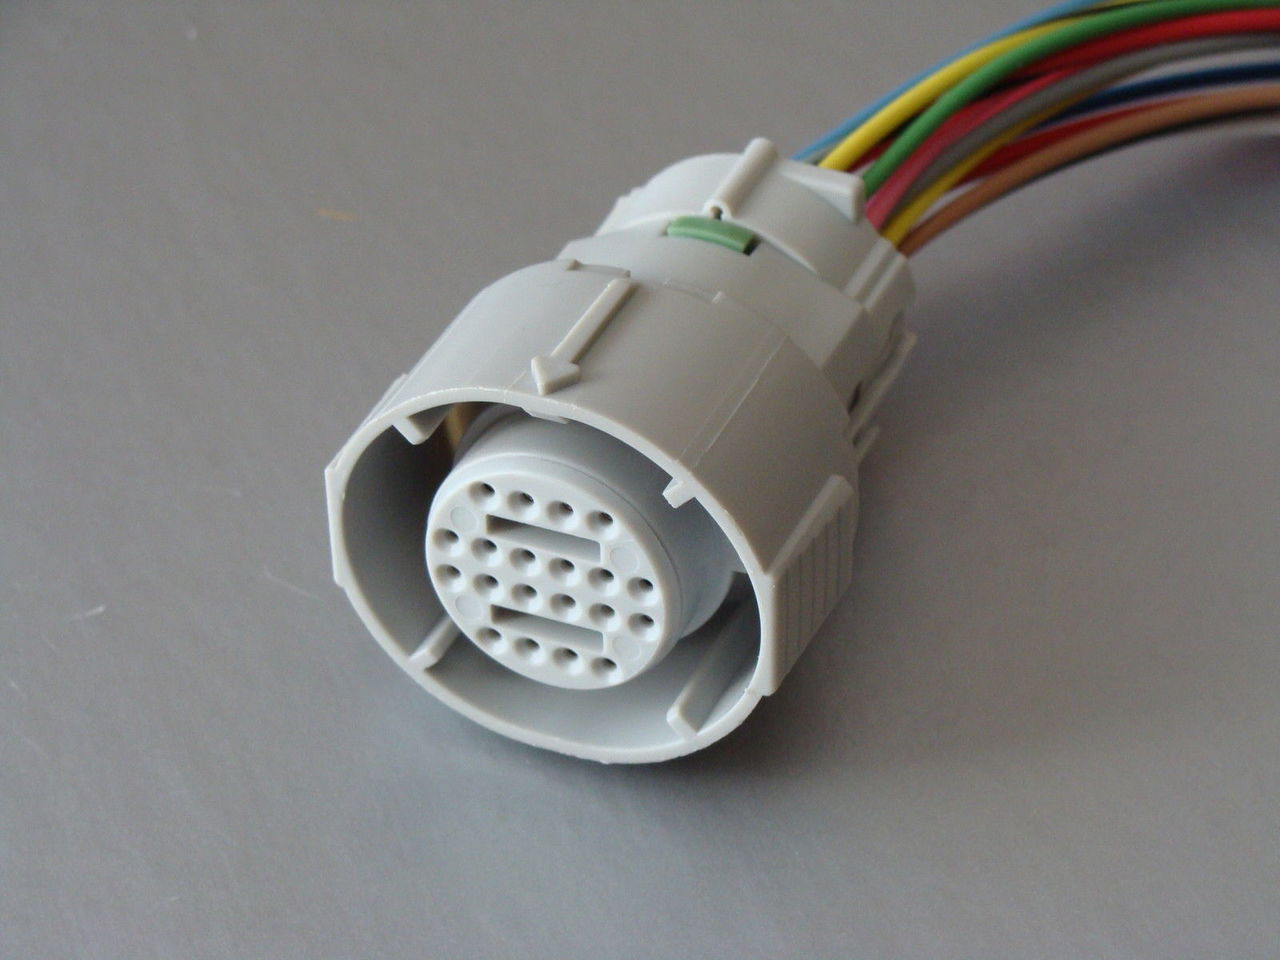 hight resolution of  automatic transmission harness connector image 1